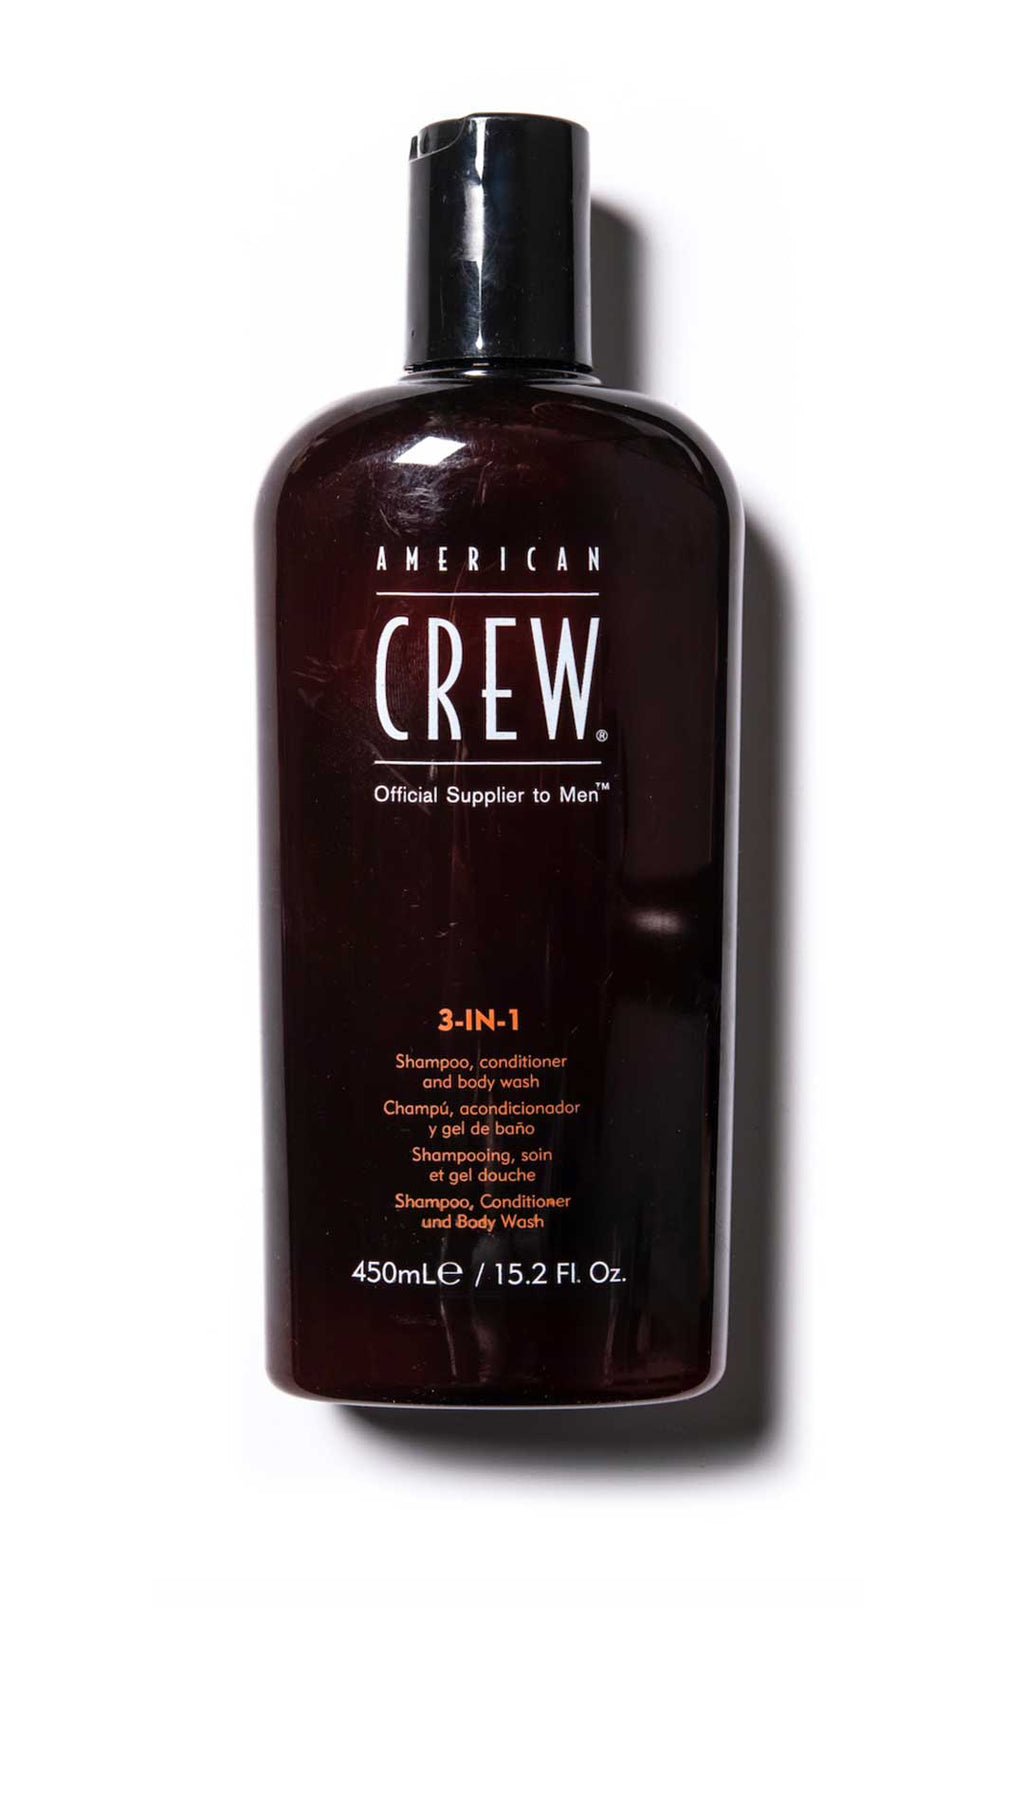 CLASSIC 3-IN-1 - SHAMPOING 3 EN 1 - AMERICAN CREW